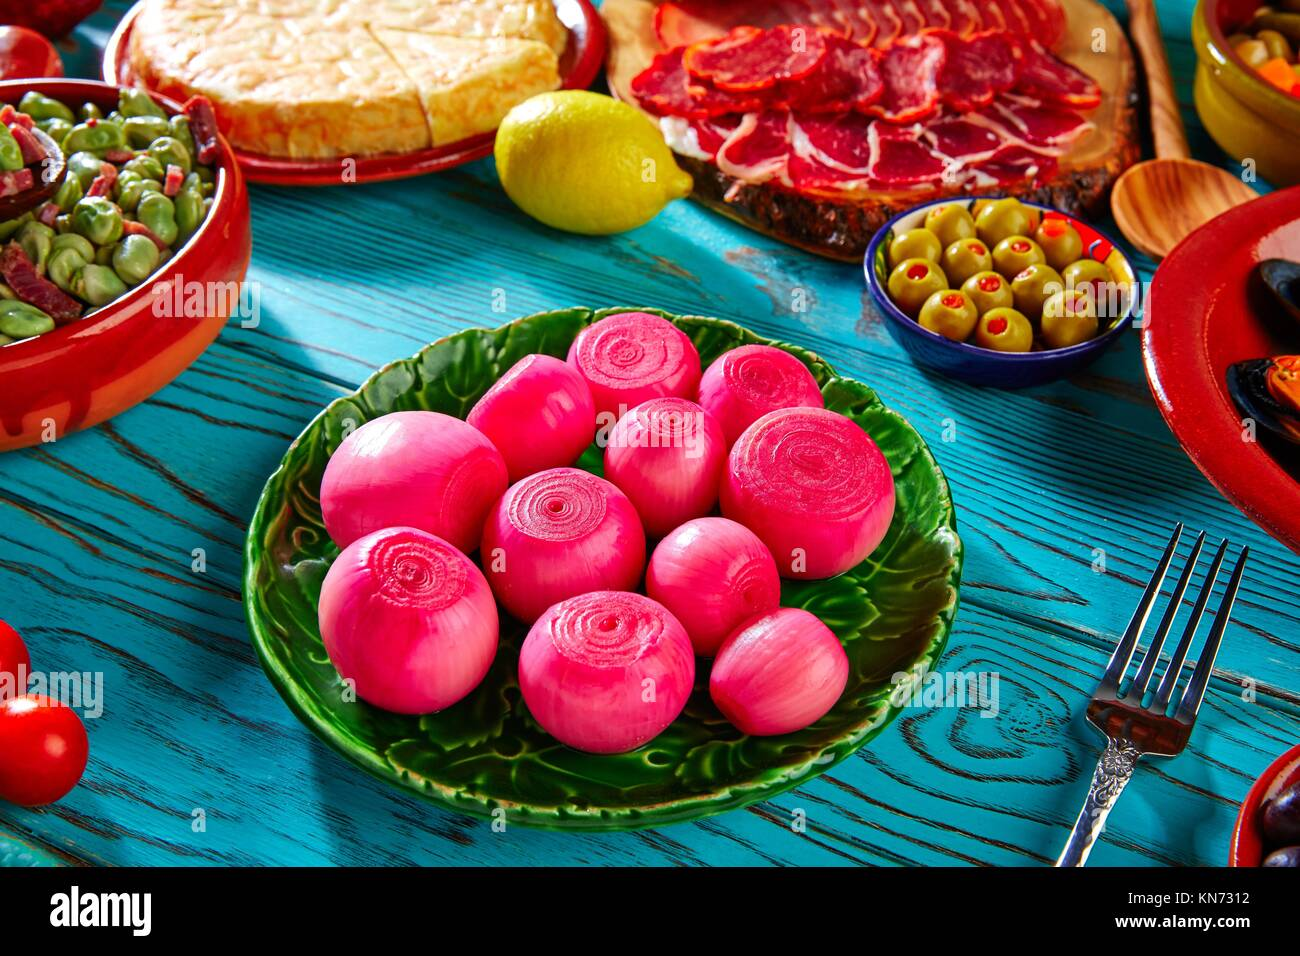 Tapas pickles onion red vinegar from Spain and Mediterranean. - Stock Image